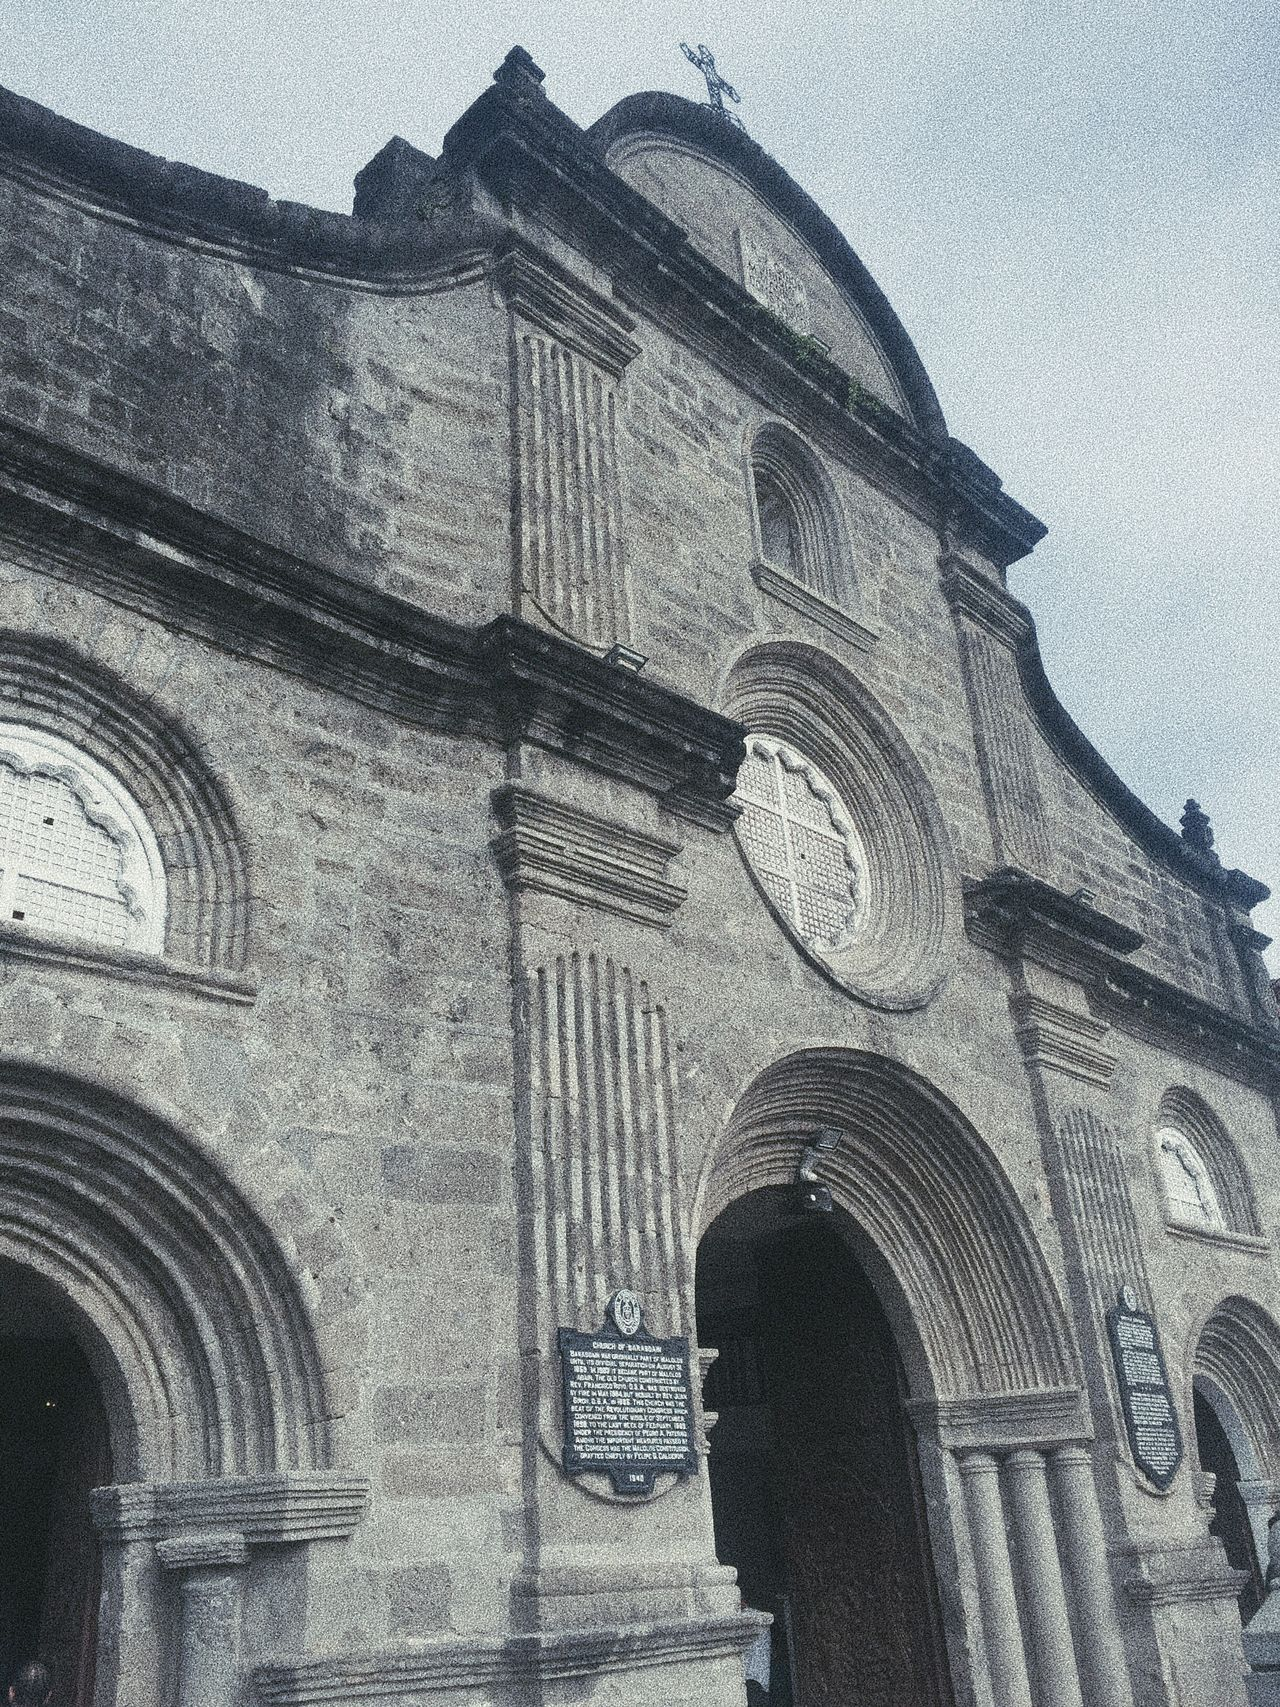 Historical Church... Low Angle View Architecture Built Structure Building Exterior Arch Religion Sky Travel Destinations Place Of Worship Day No People Outdoors History Spirituality Rose Window